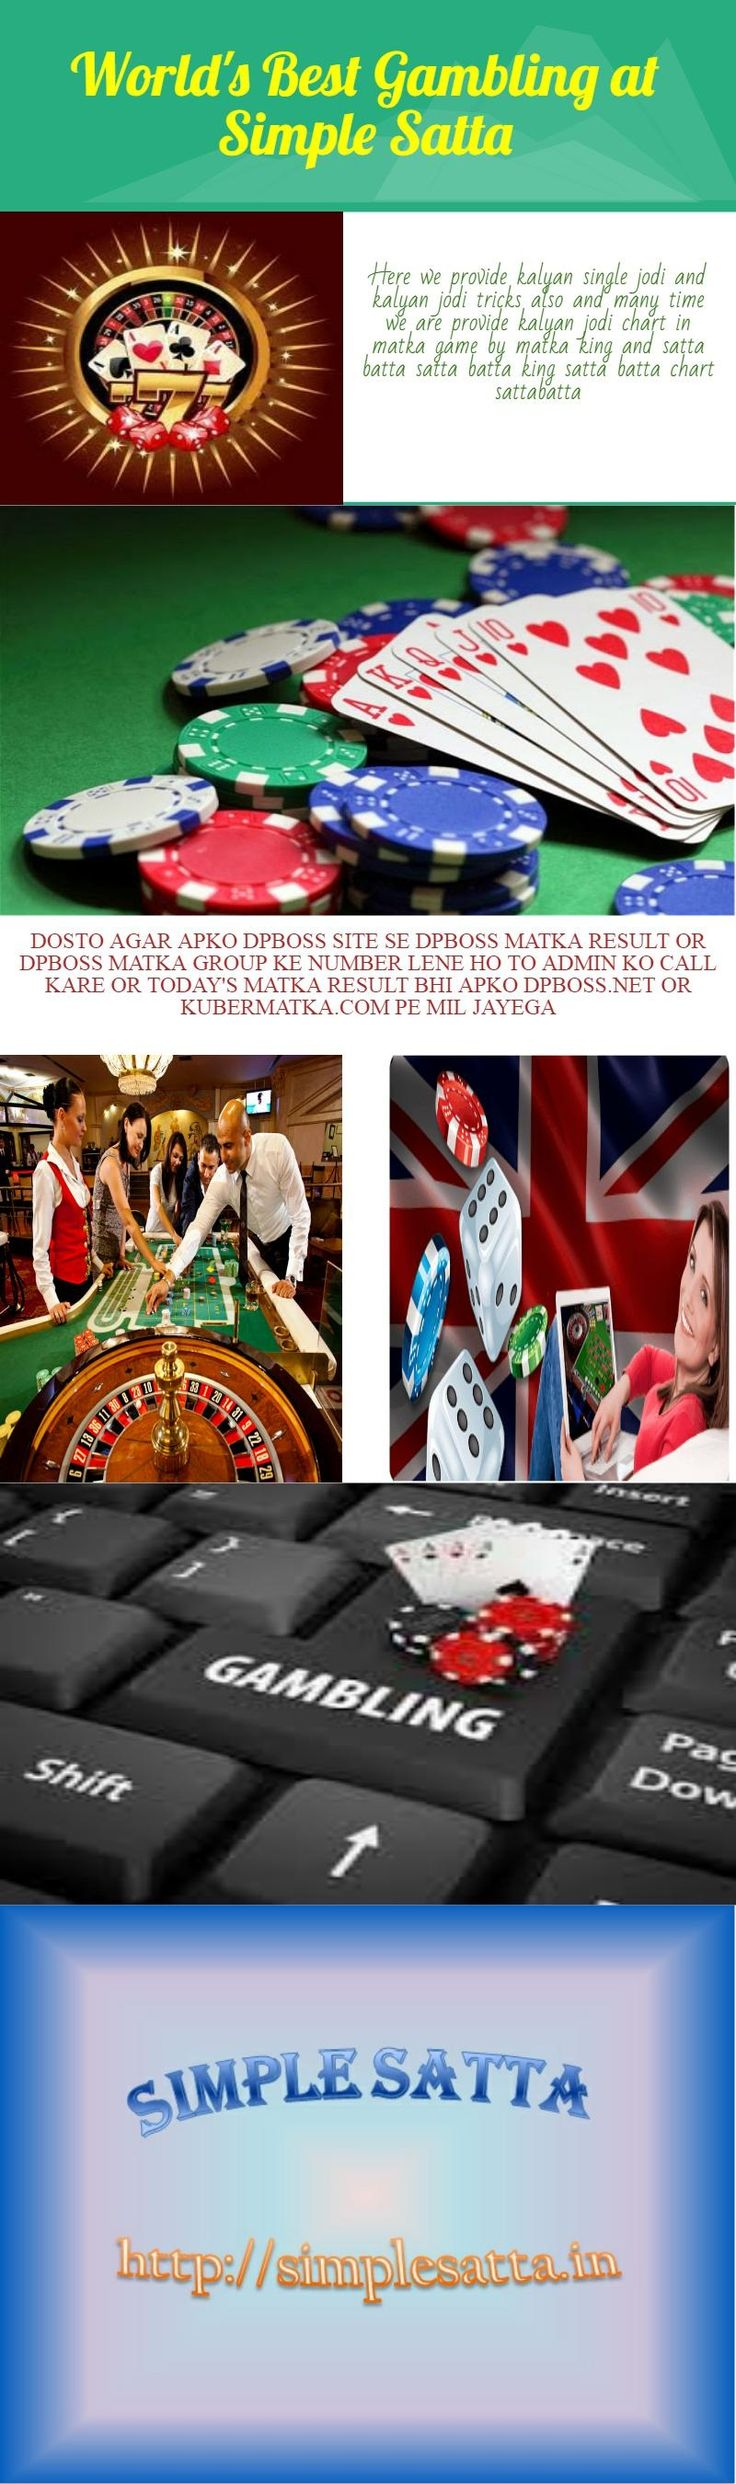 Kalyan gambling how to cheat the casino